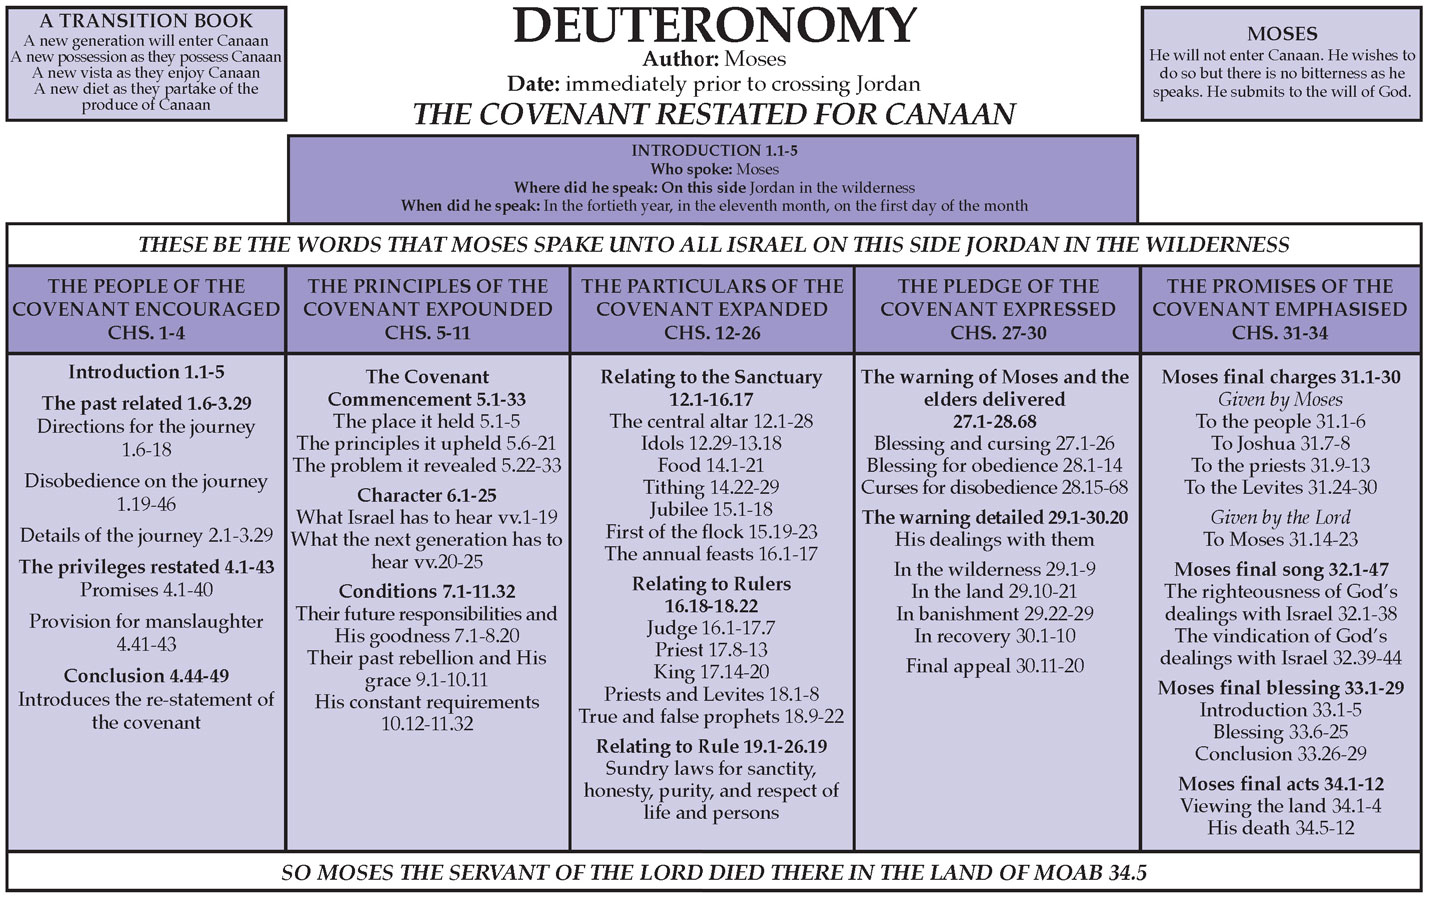 Deuteronomy Chart From Believers Magazine Accessed November 7 2013